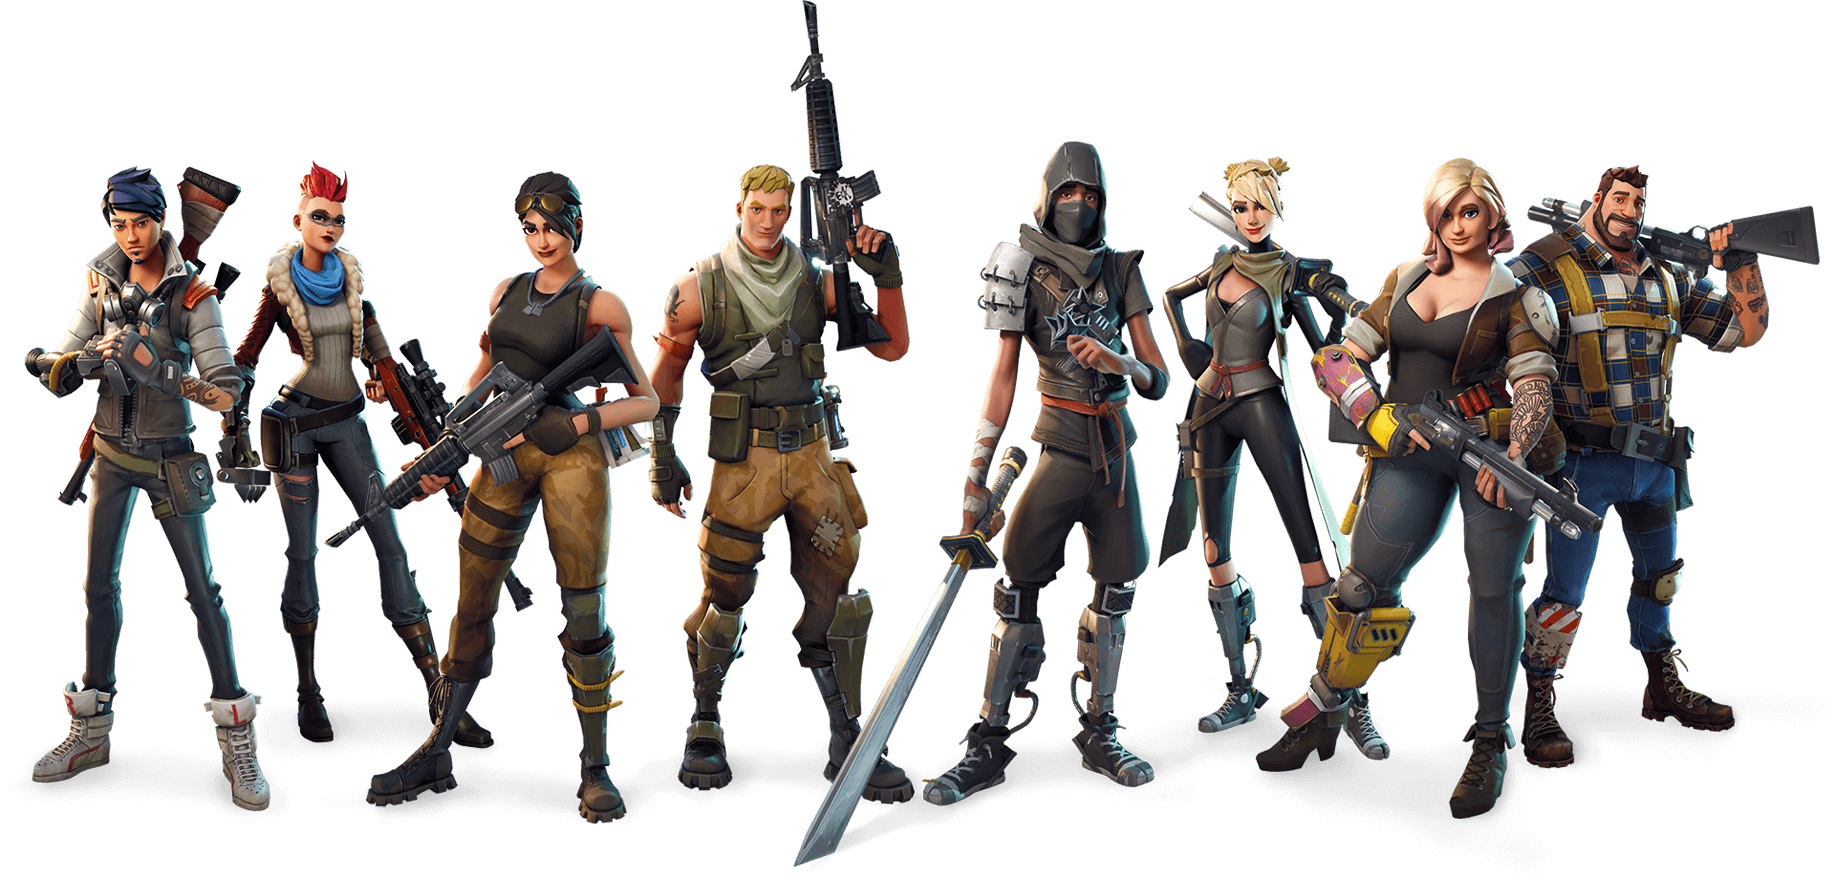 Fortnite Hacker Net download fortnite all classes group picture png image for